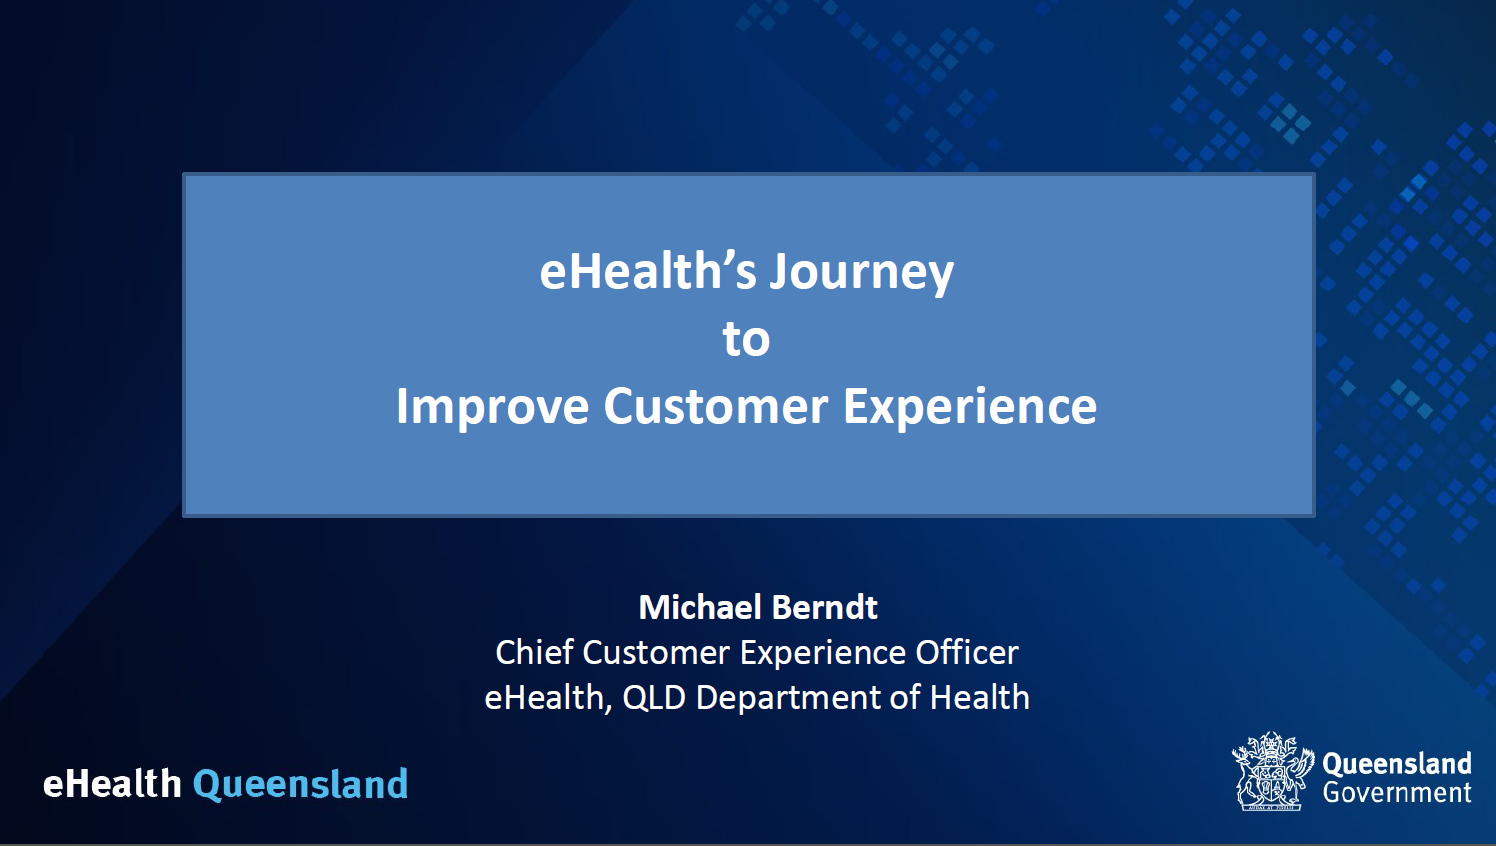 eHealth's Journey to Improve Customer Experience